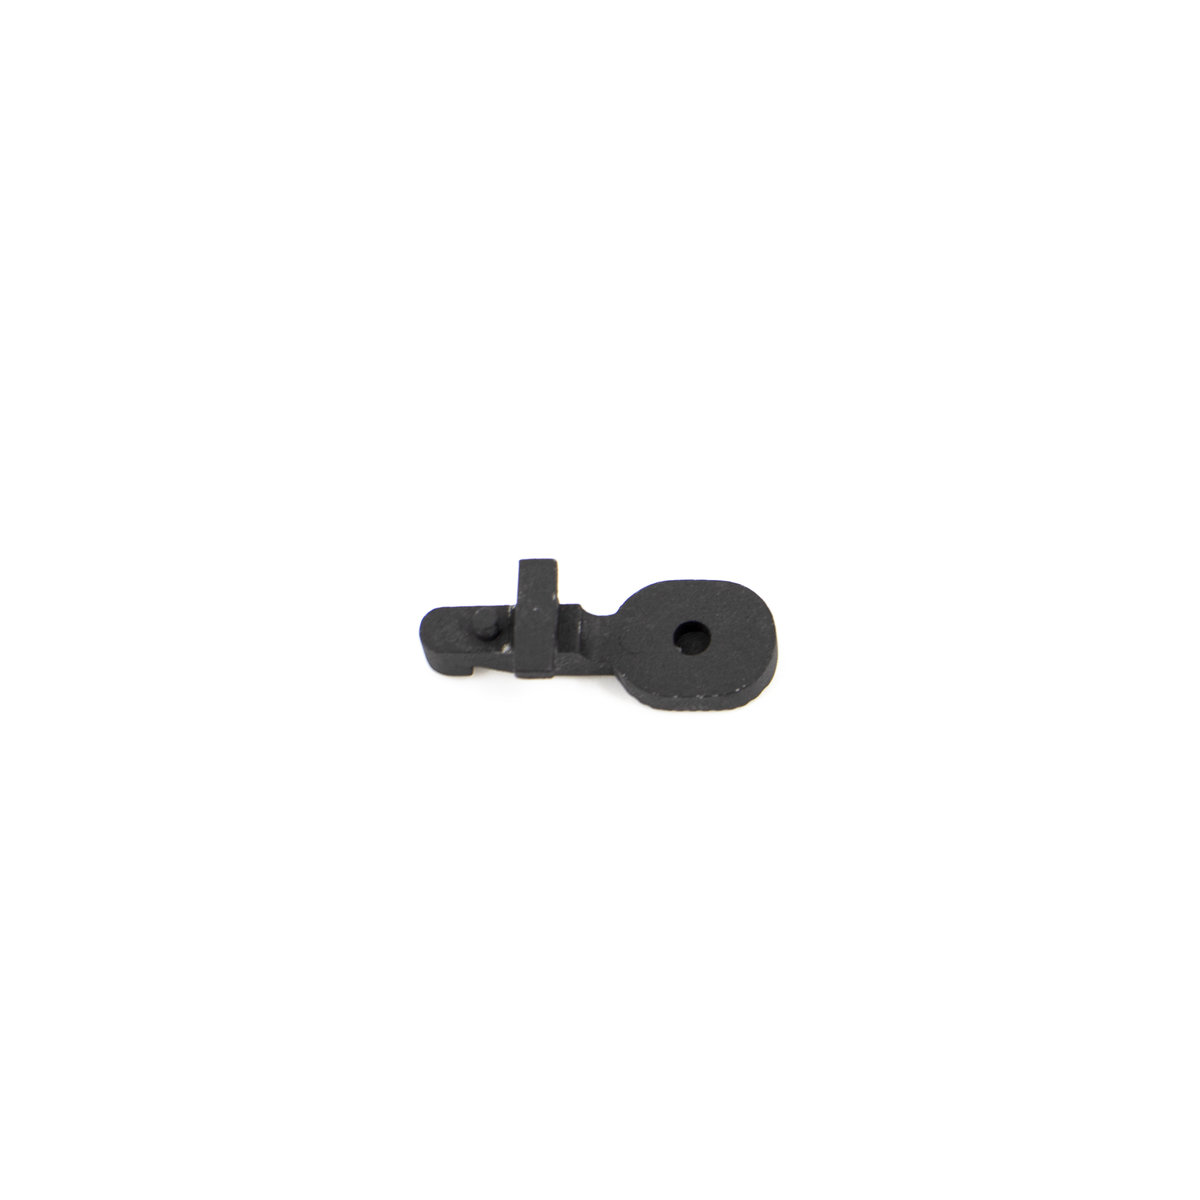 View larger image of Valken Standard Bolt Catch / Release for M4 / M16 Series Airsoft Rifles